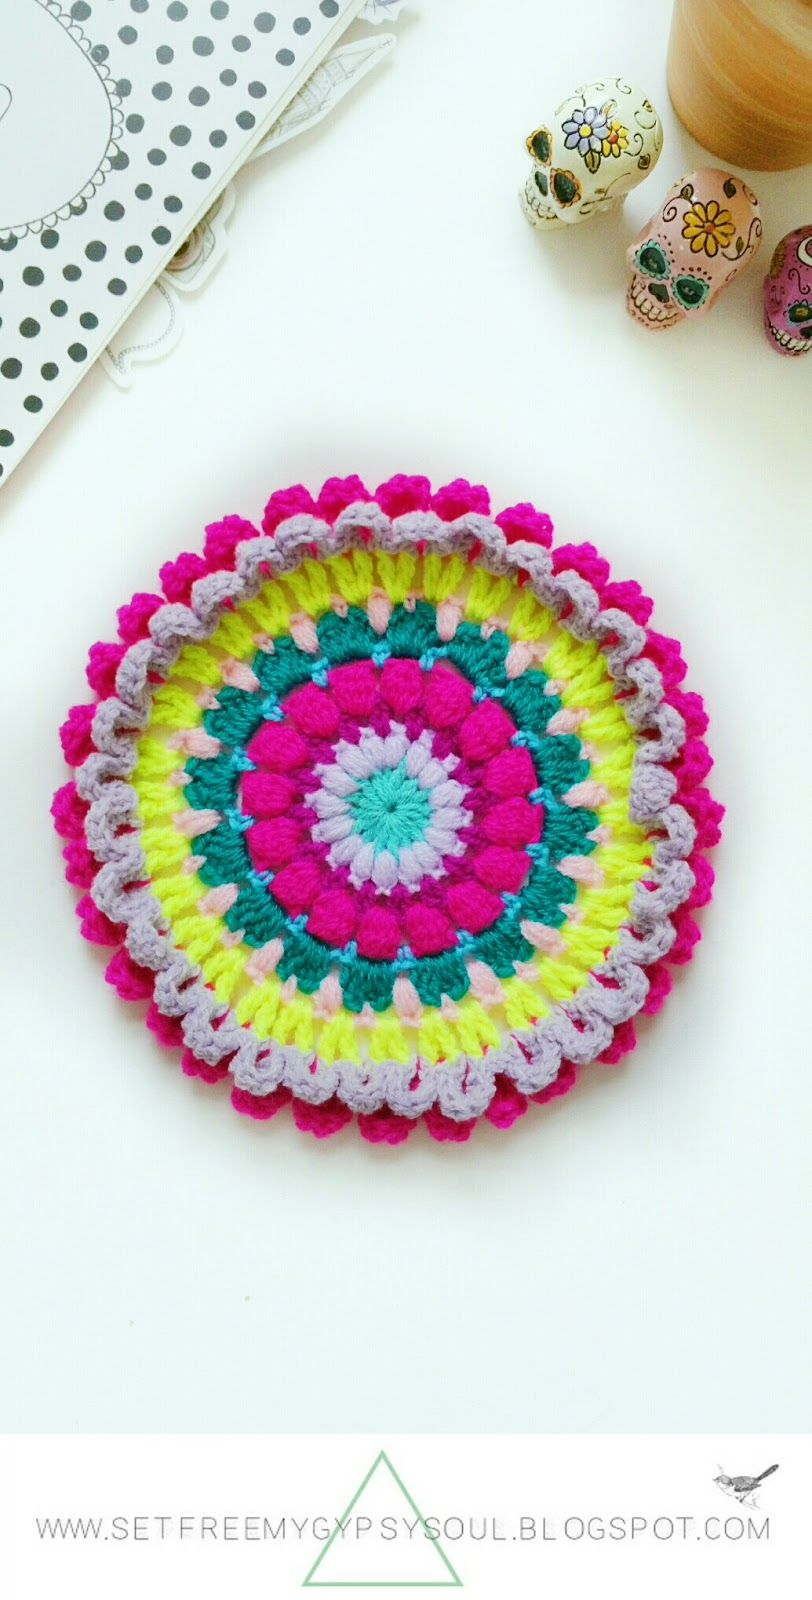 Psychadellic Parma Violet Mandala   Free Crochet Pattern - make this crocheted bohemian gypsy soul hippie trippy flower mandala for instant festival feels in your home, office, narrowboat or campsite!